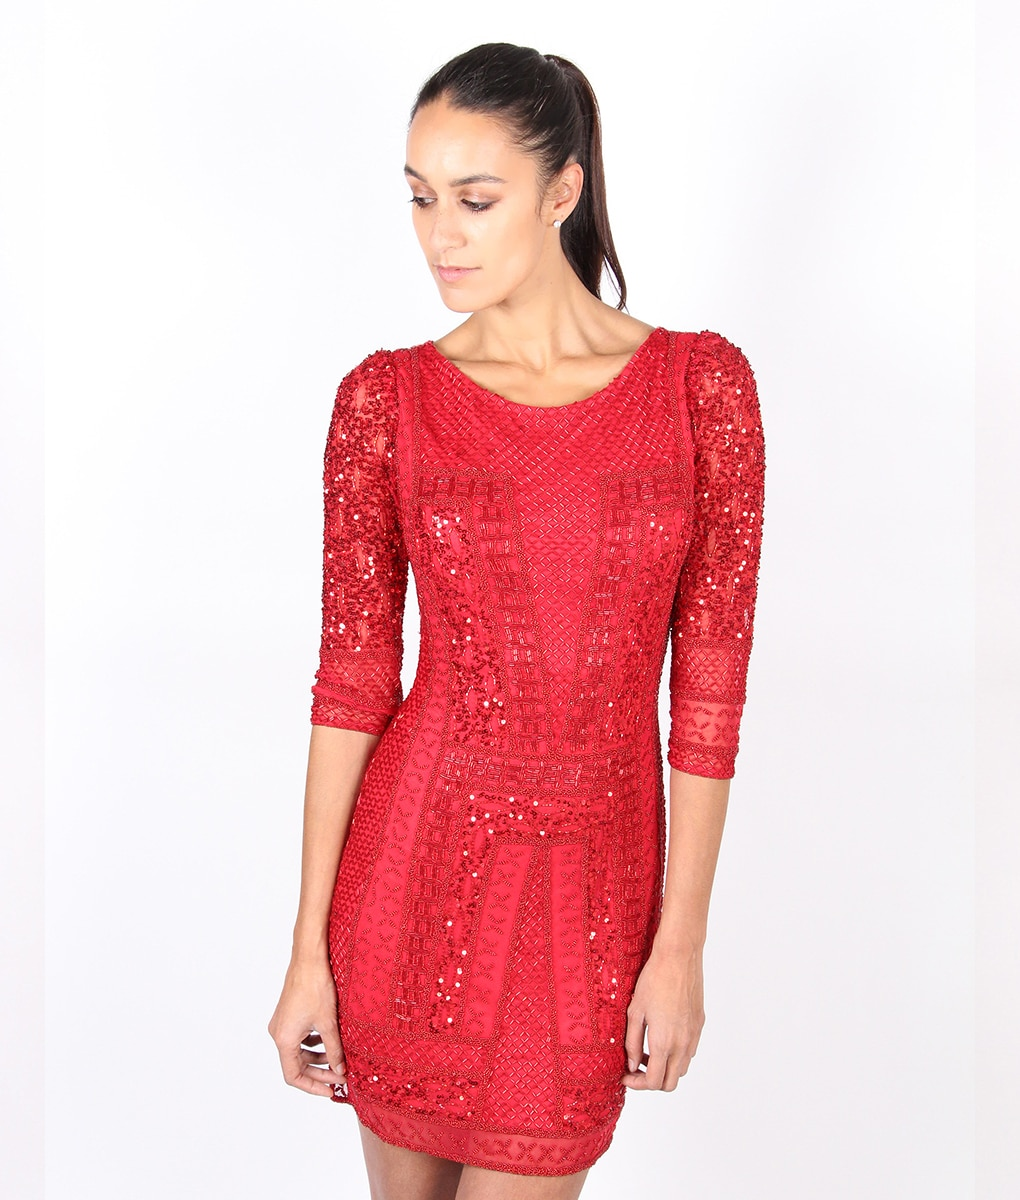 Alila-Red-Long-sleeve-Sequin-party-dress-by-Scala-side